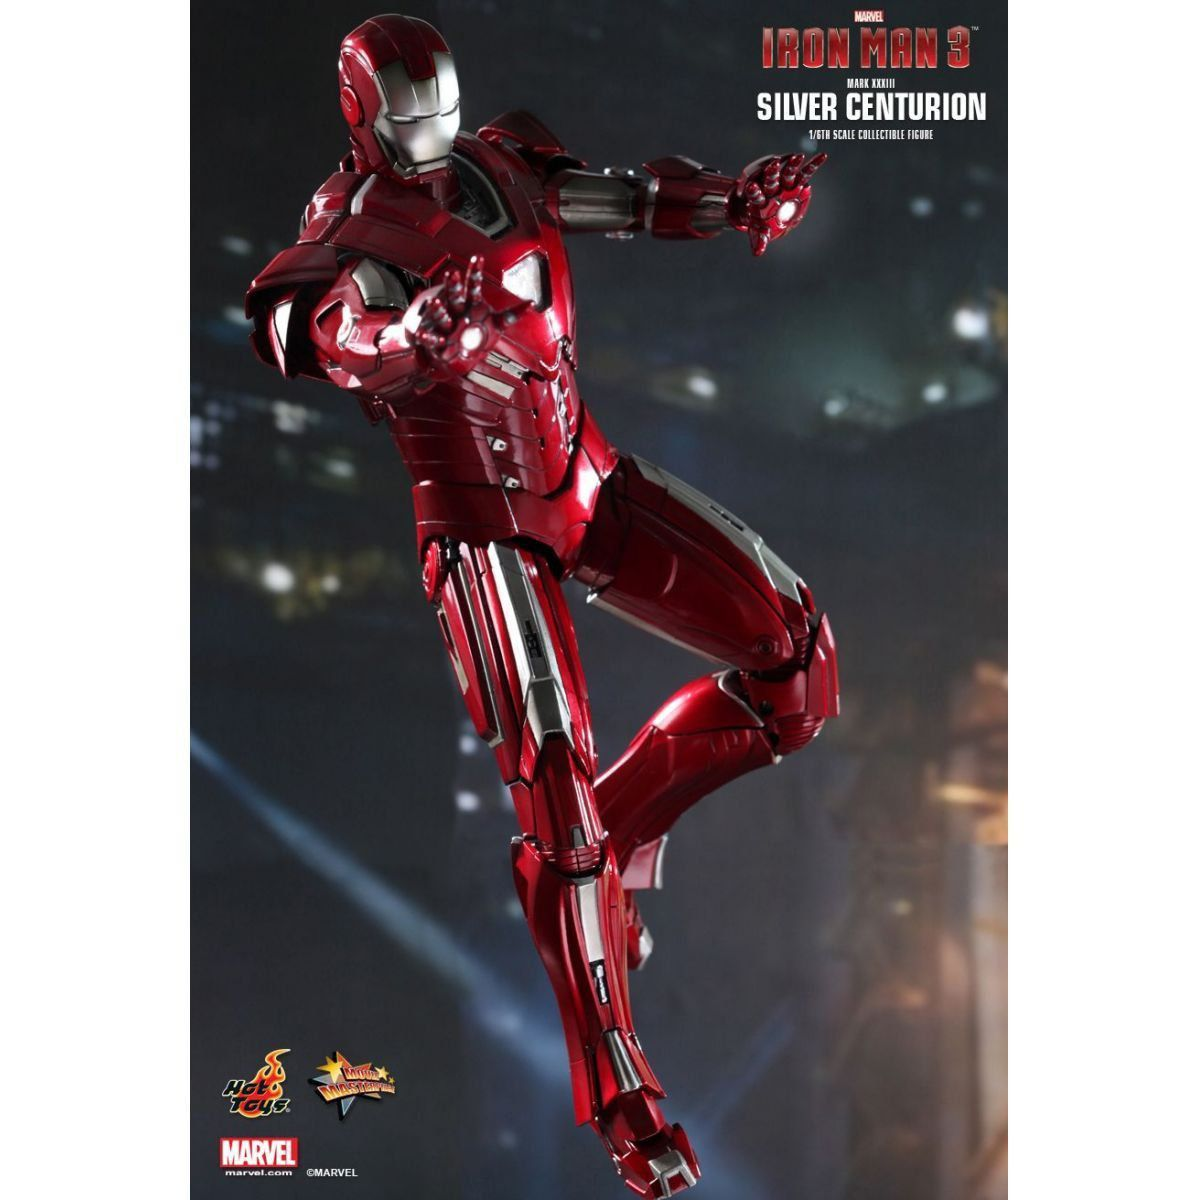 Action Figure Iron Man (Mark XXXIII Silver Centurion): Iron Man 3 (Homem de Ferro 3) Boneco Colecionável Escala 1/6 (MMS213) - Hot Toys